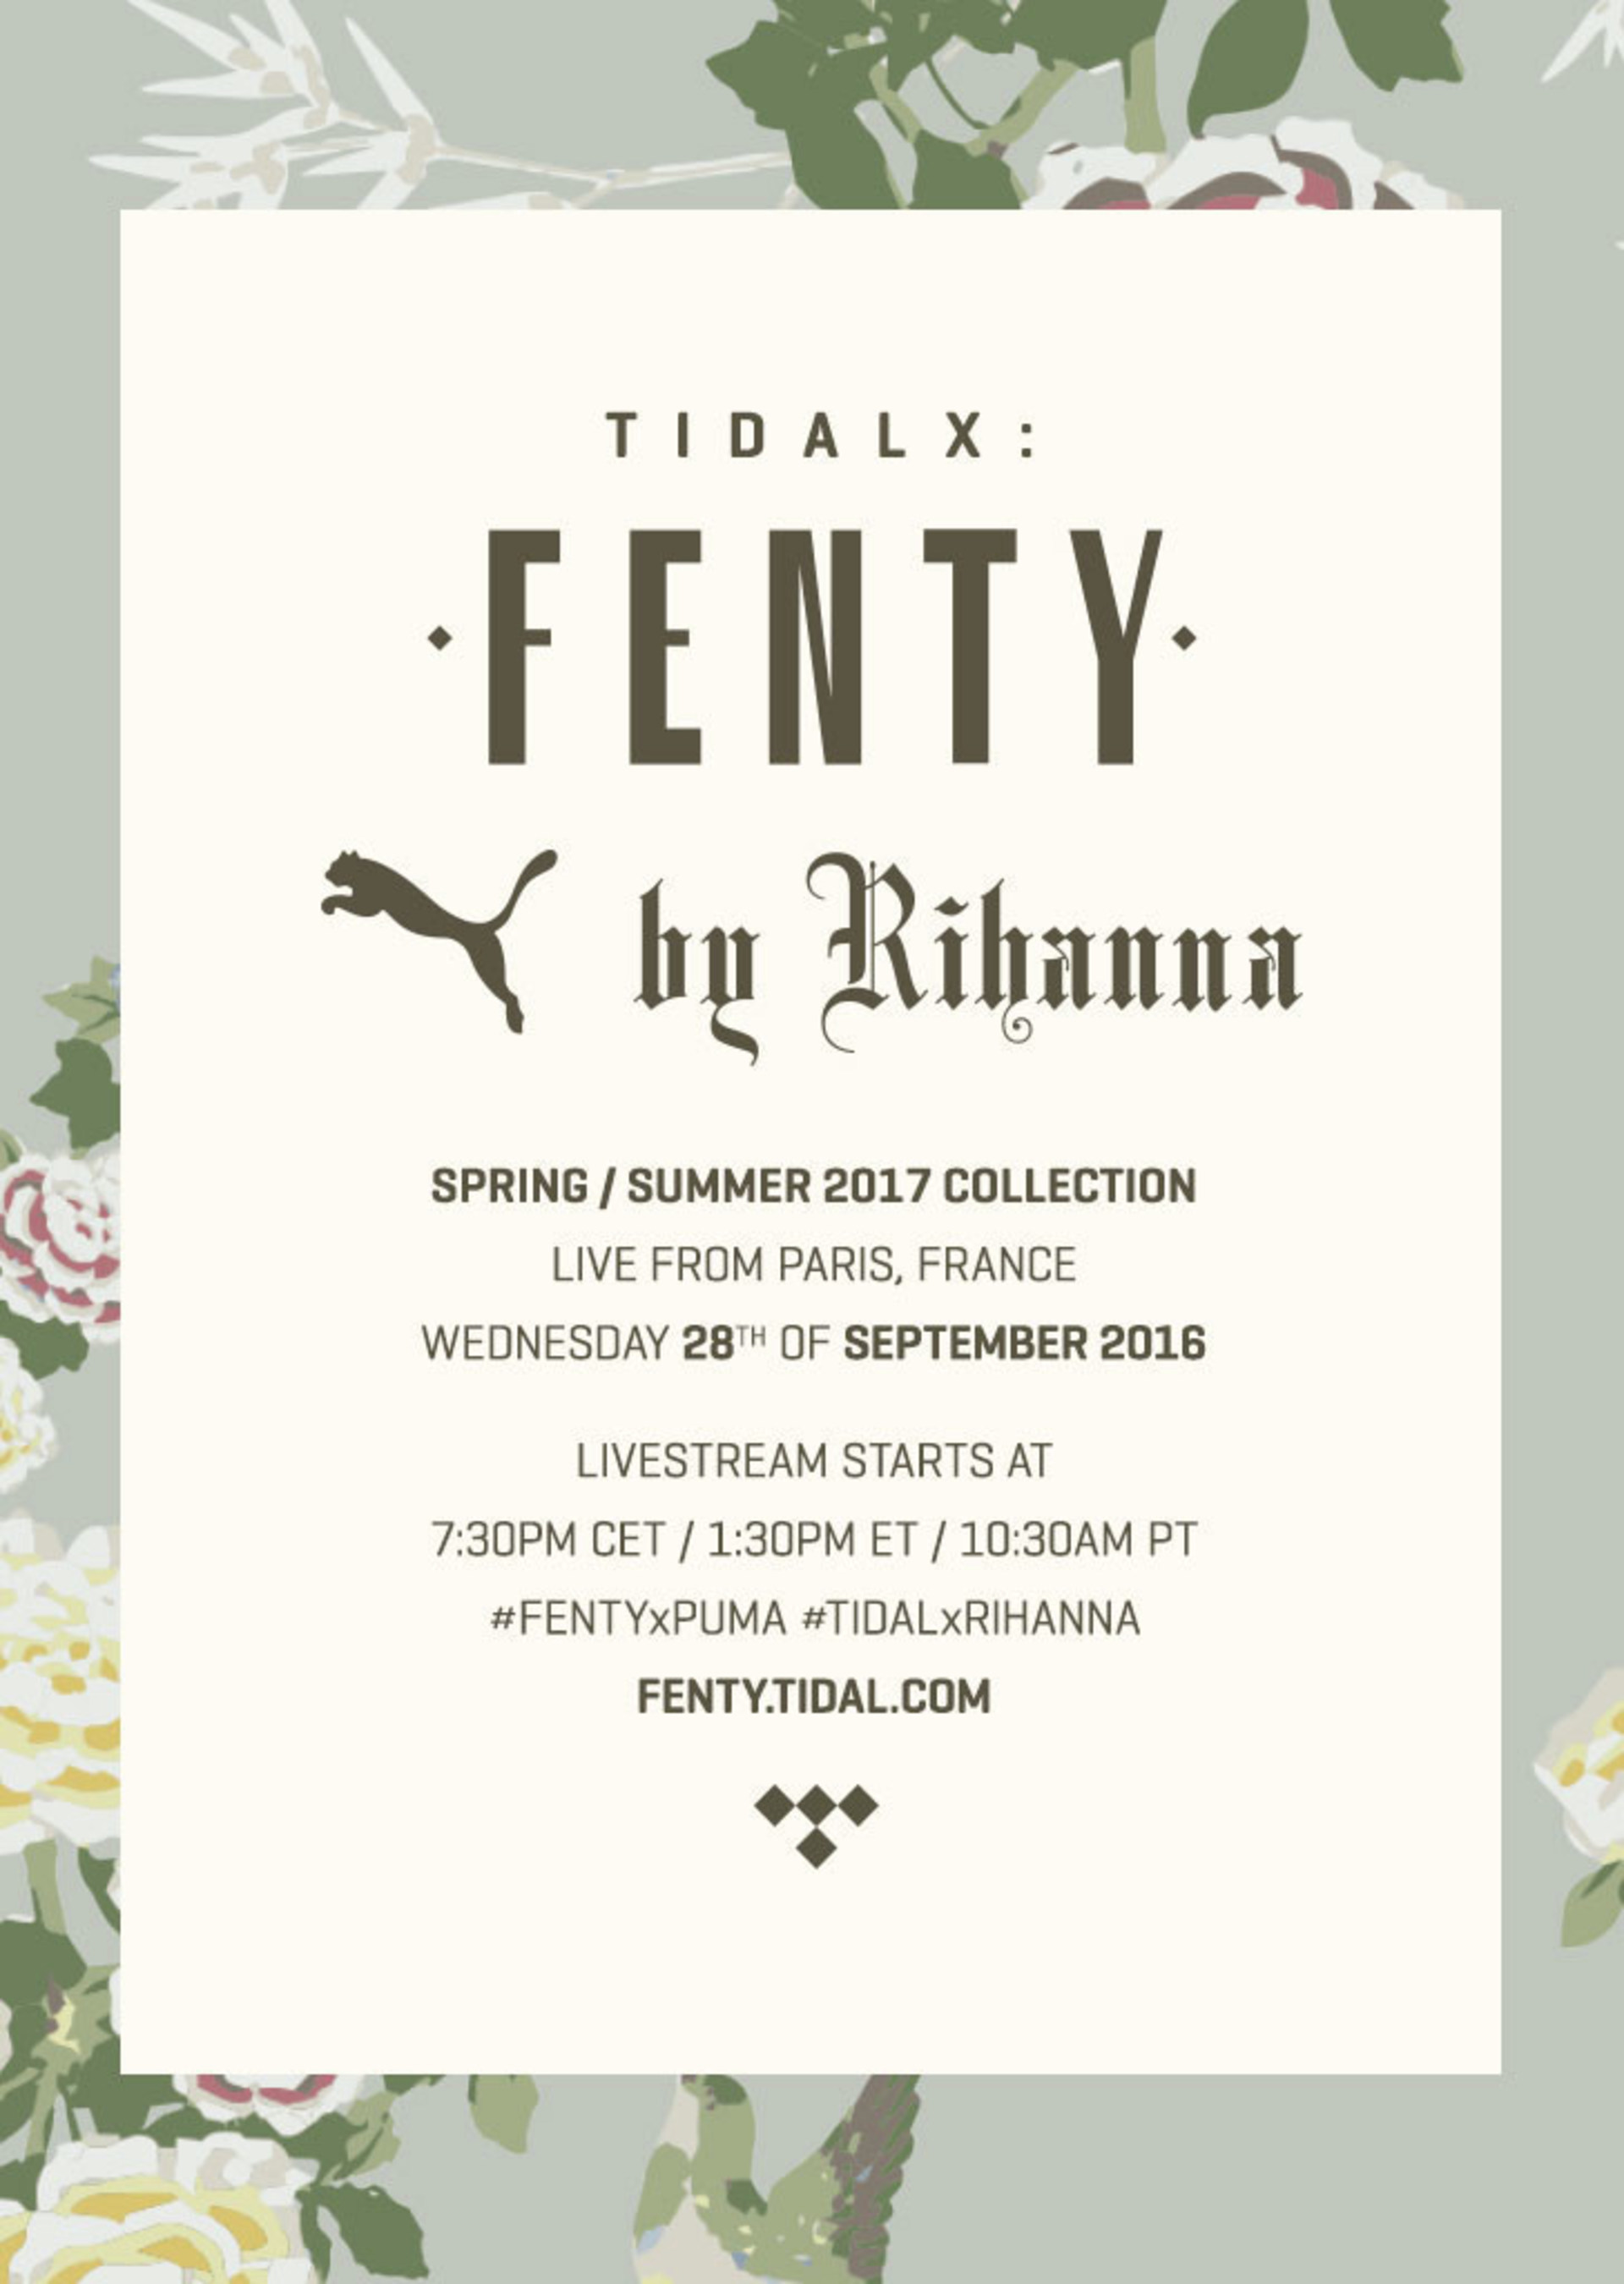 Rihanna partners with TIDAL to give fans worldwide front row access to her next collection on Wednesday, September 28th.